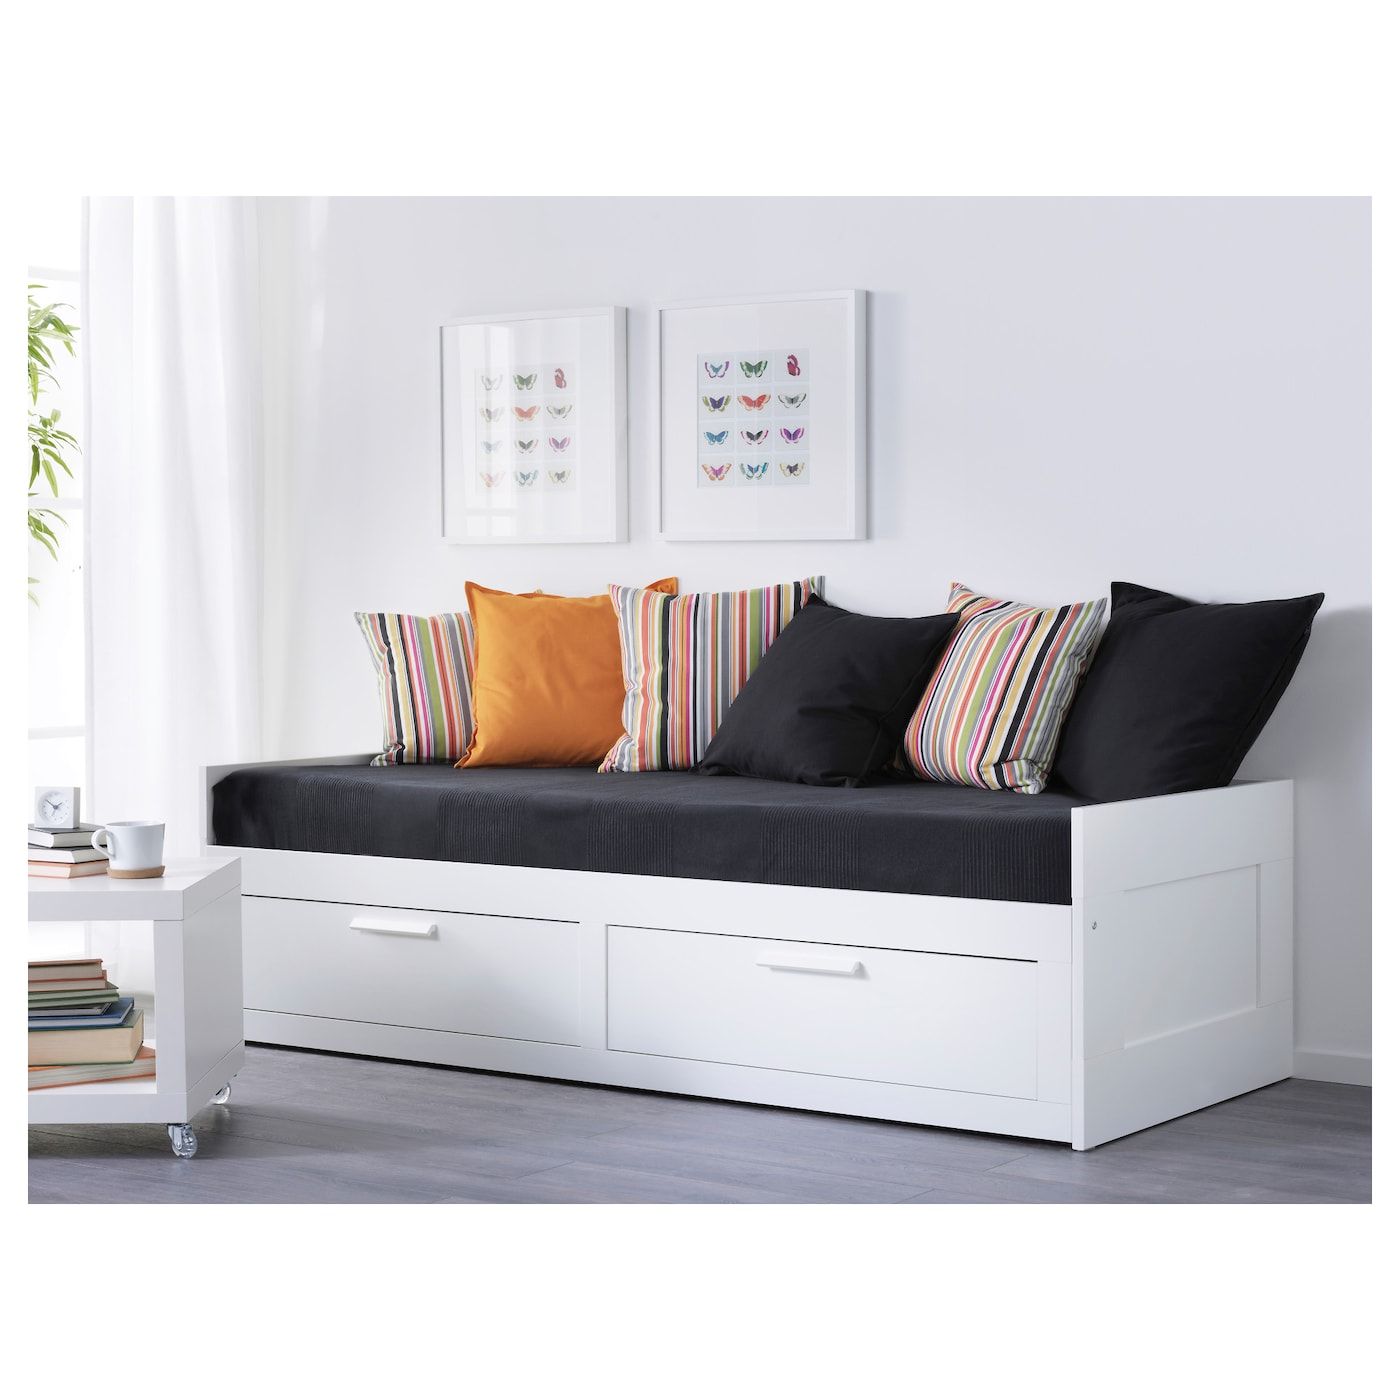 brimnes day bed w 2 drawers 2 mattresses white moshult firm 80x200 cm ikea. Black Bedroom Furniture Sets. Home Design Ideas